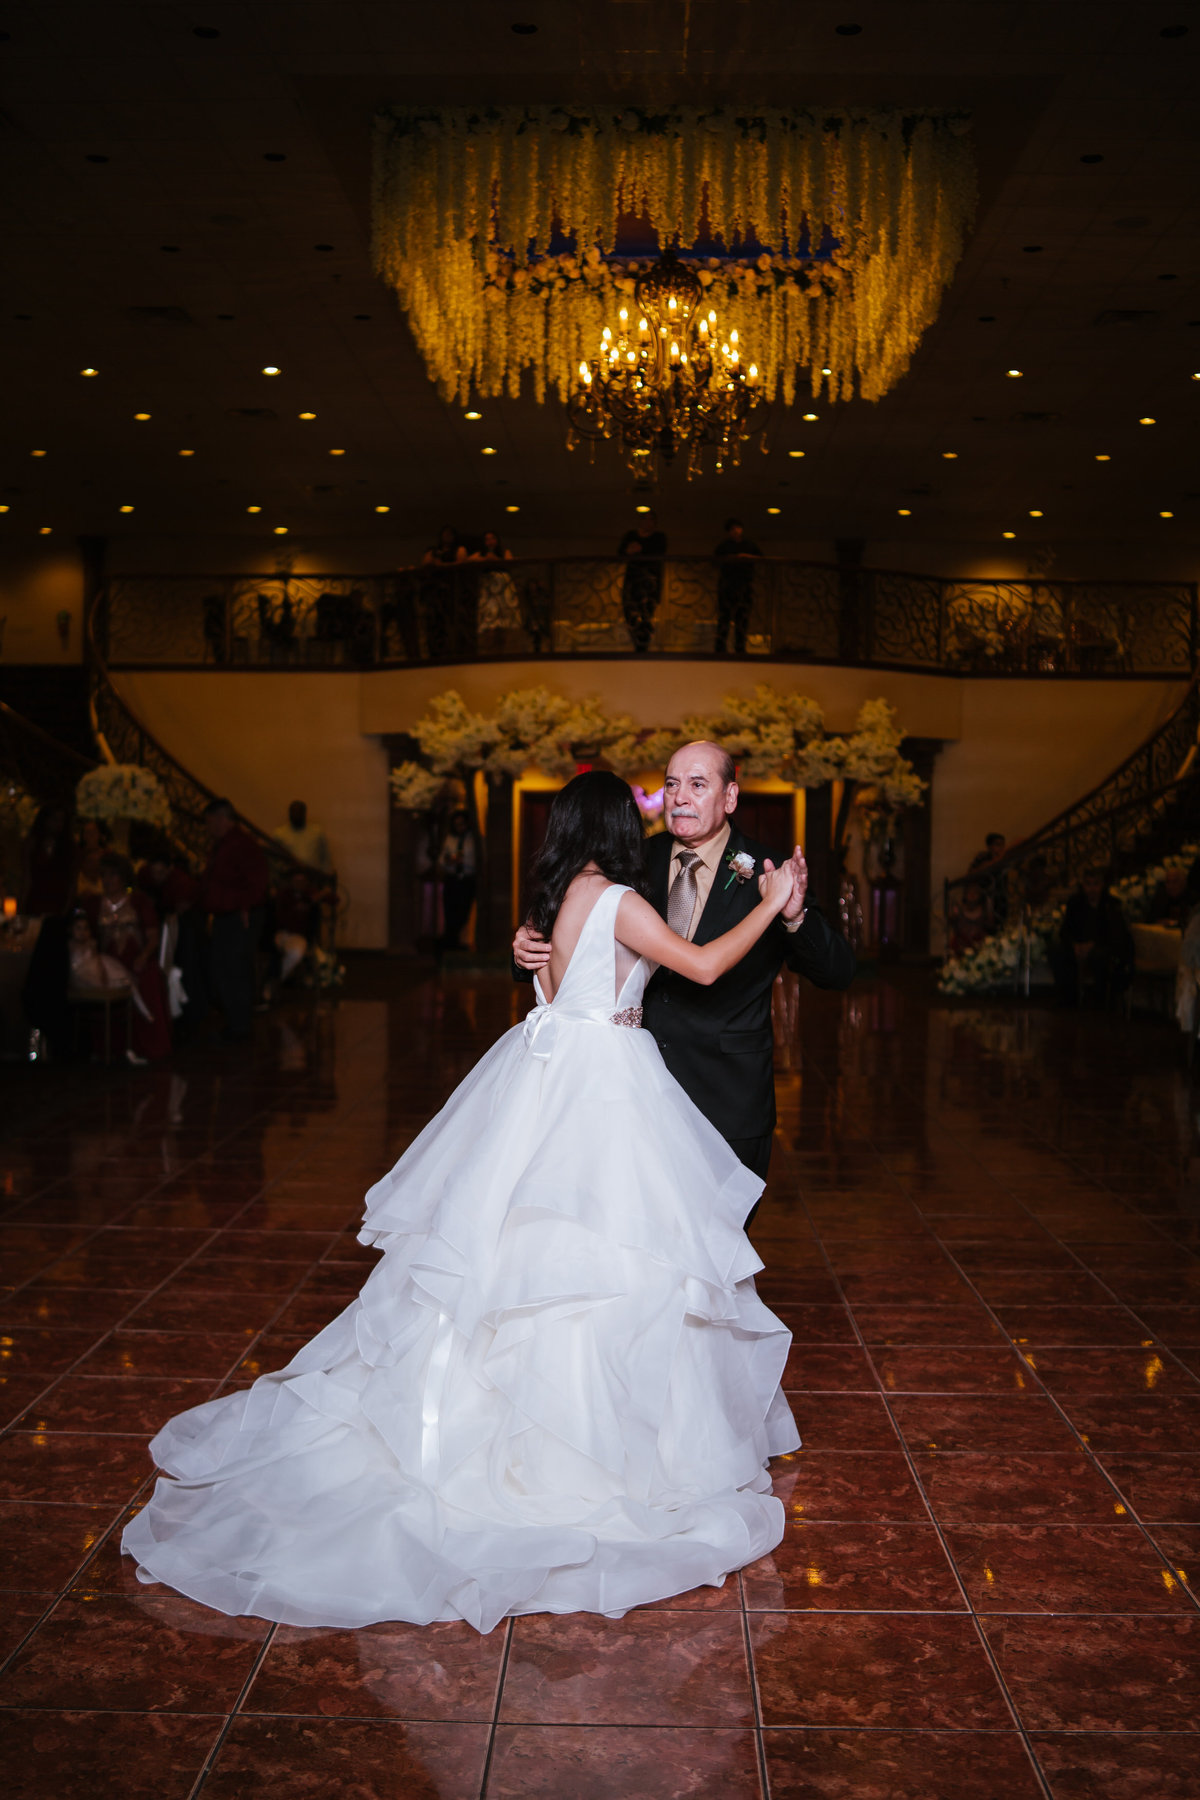 father dances with daughter during wedding reception at The Emporium by Yarlen venue in San Antonio